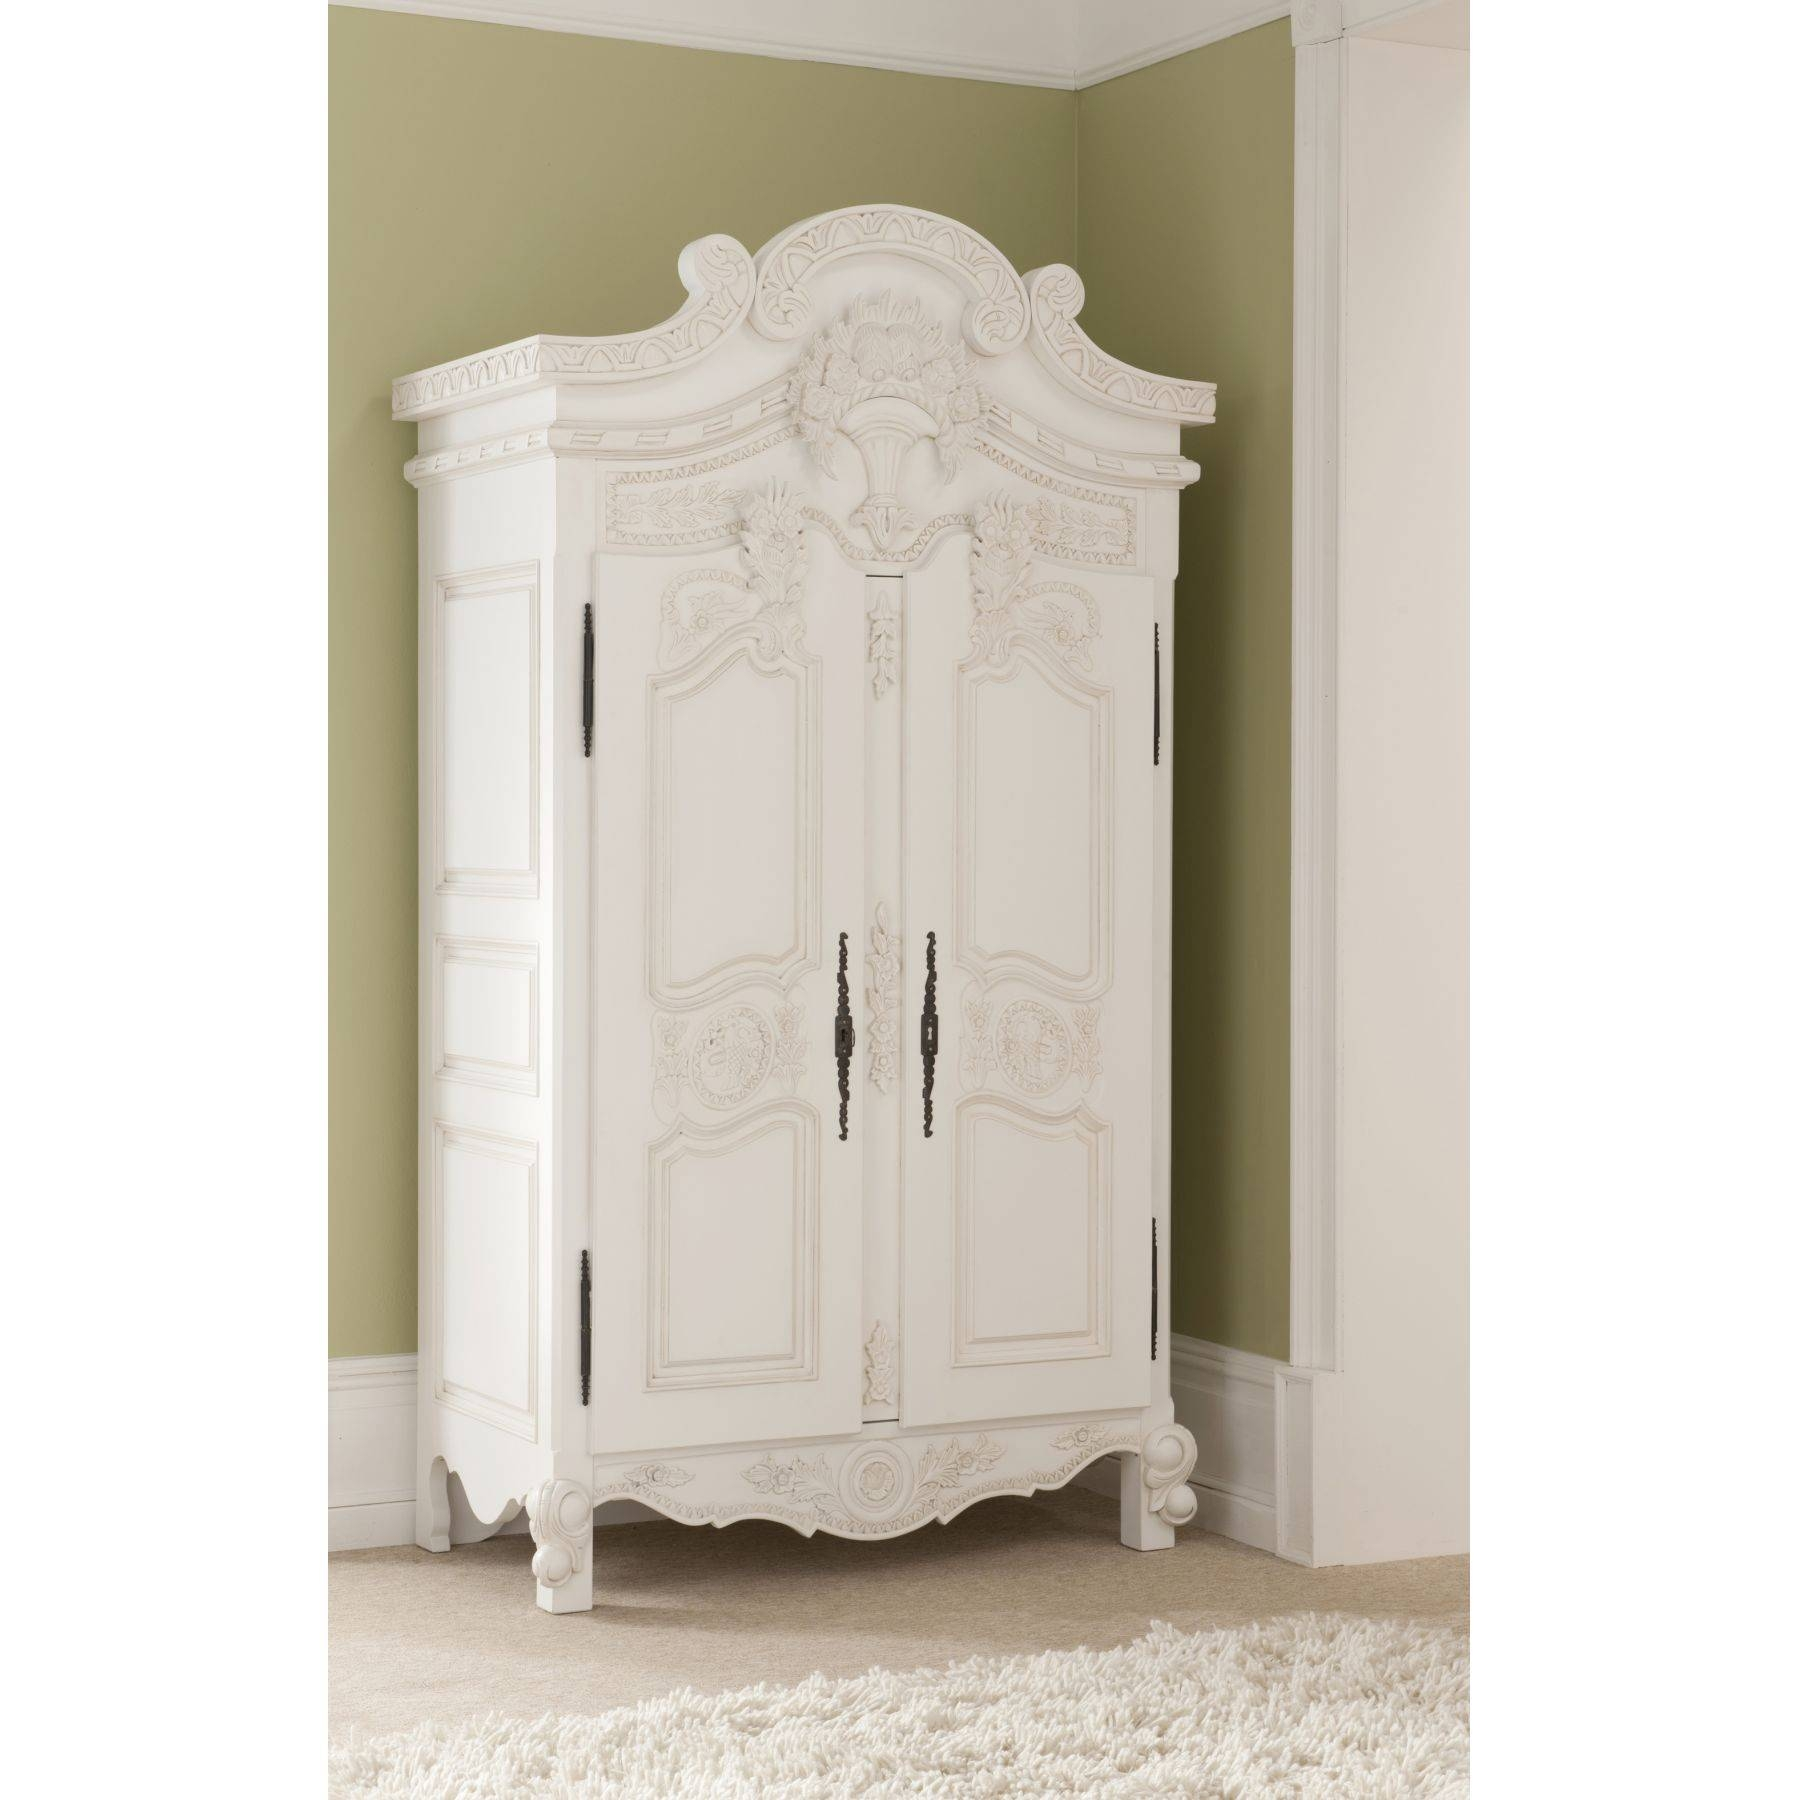 Rococo Antique French Wardrobe A Stunning Addition To Our Shabby regarding White Shabby Chic Wardrobes (Image 8 of 15)